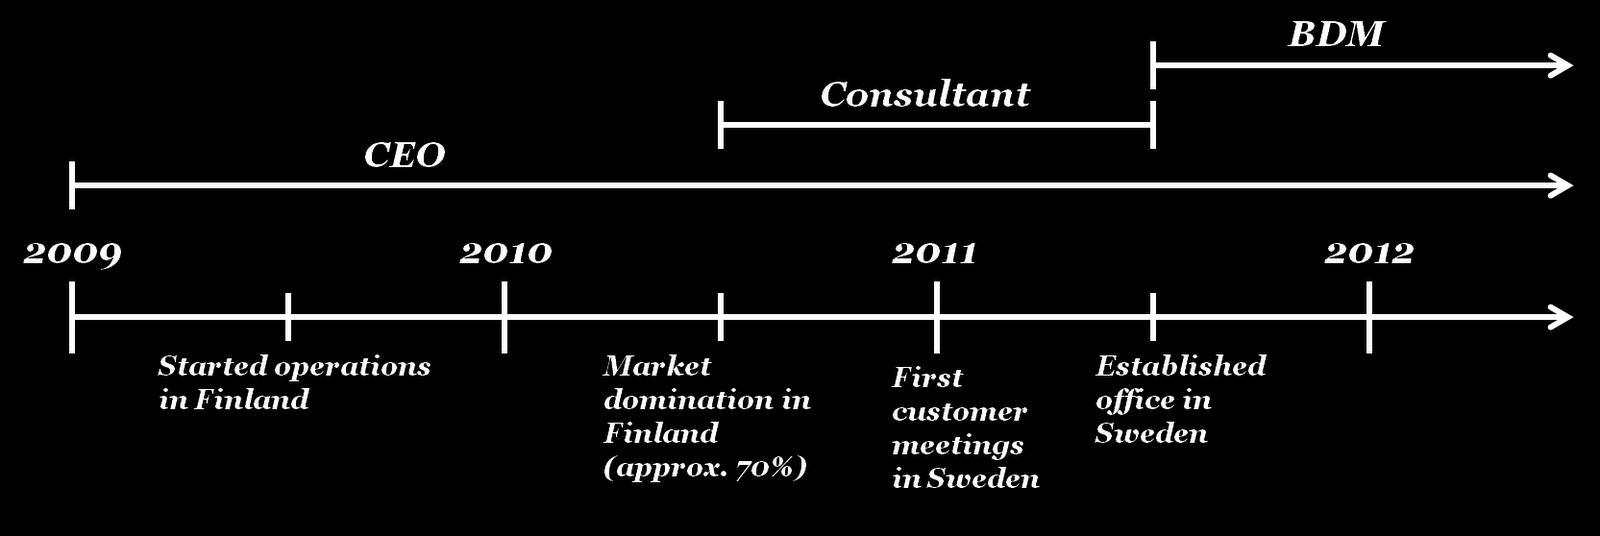 main role of the CEO in the Swedish establishment is to set a strategy and to hire the right people to execute that strategy.